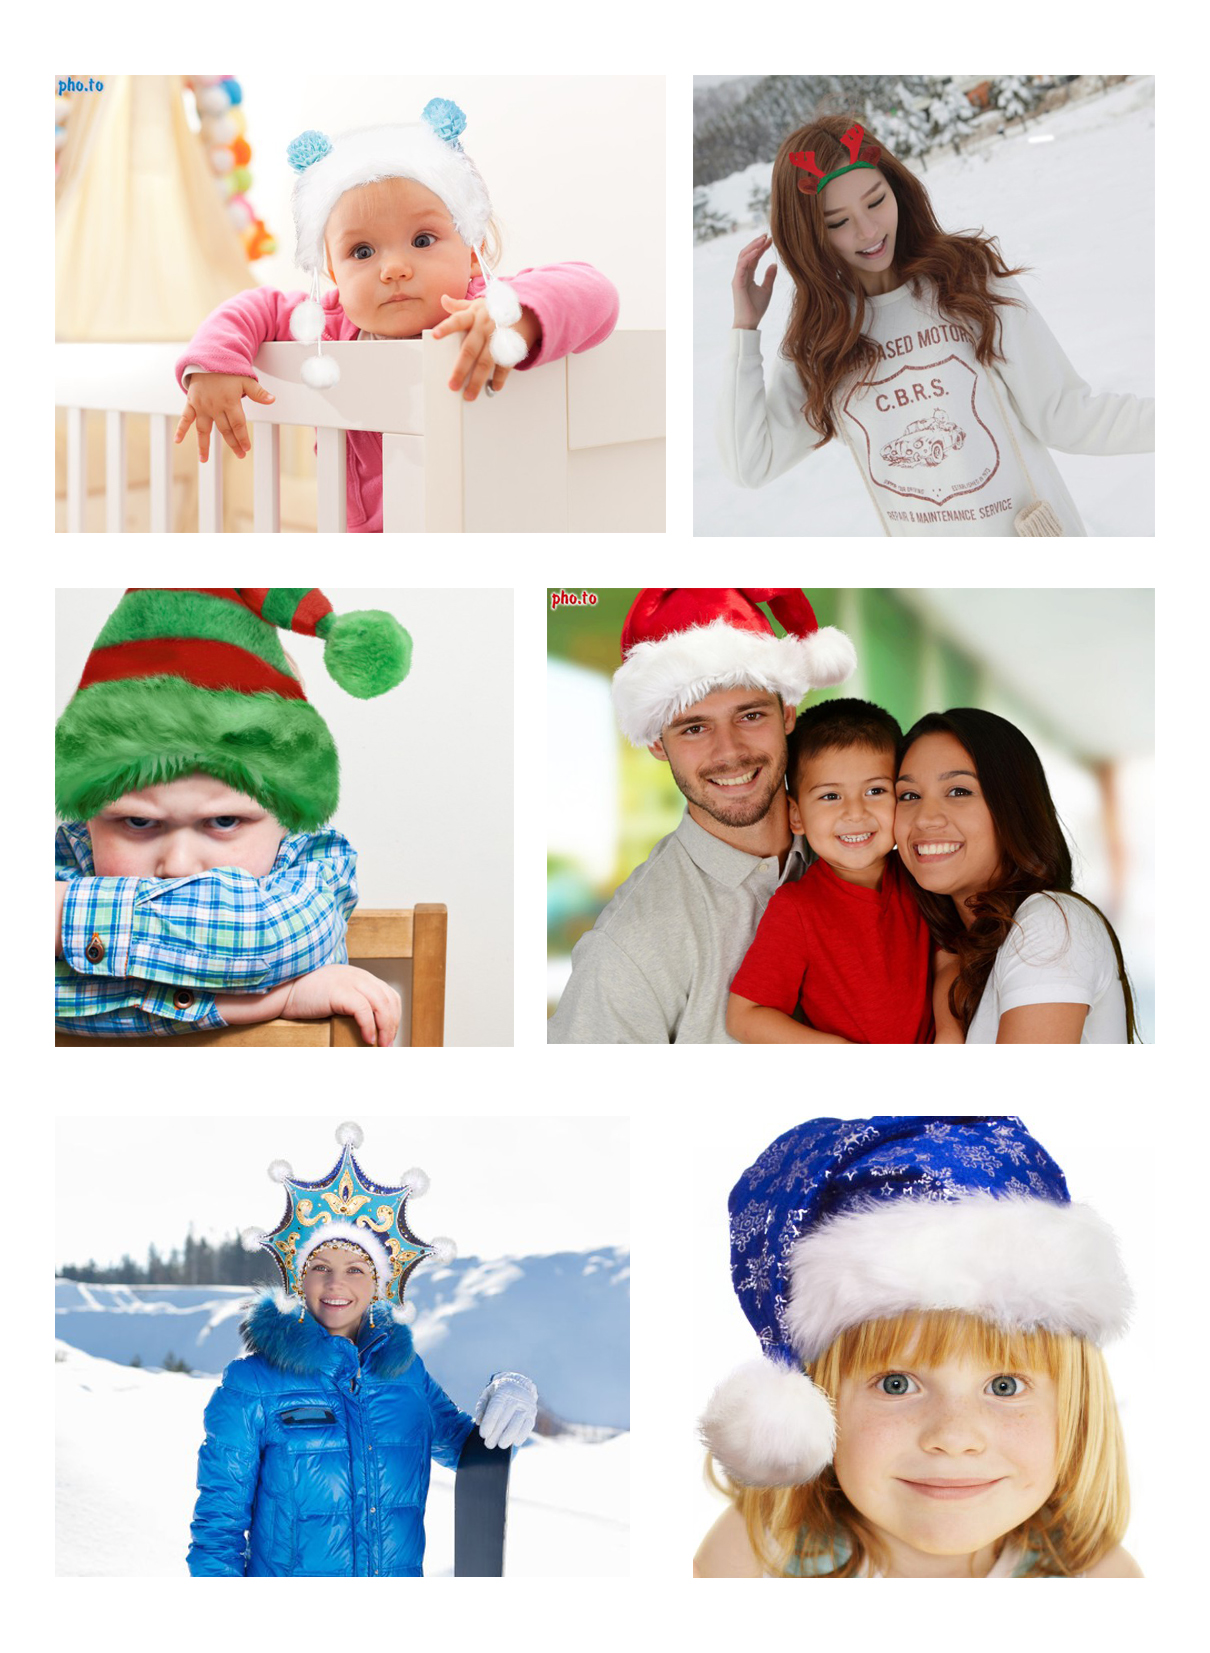 Christmas stickers with blue and red Santa hats, elf's hats and a snow maiden headwear to adorn your photos